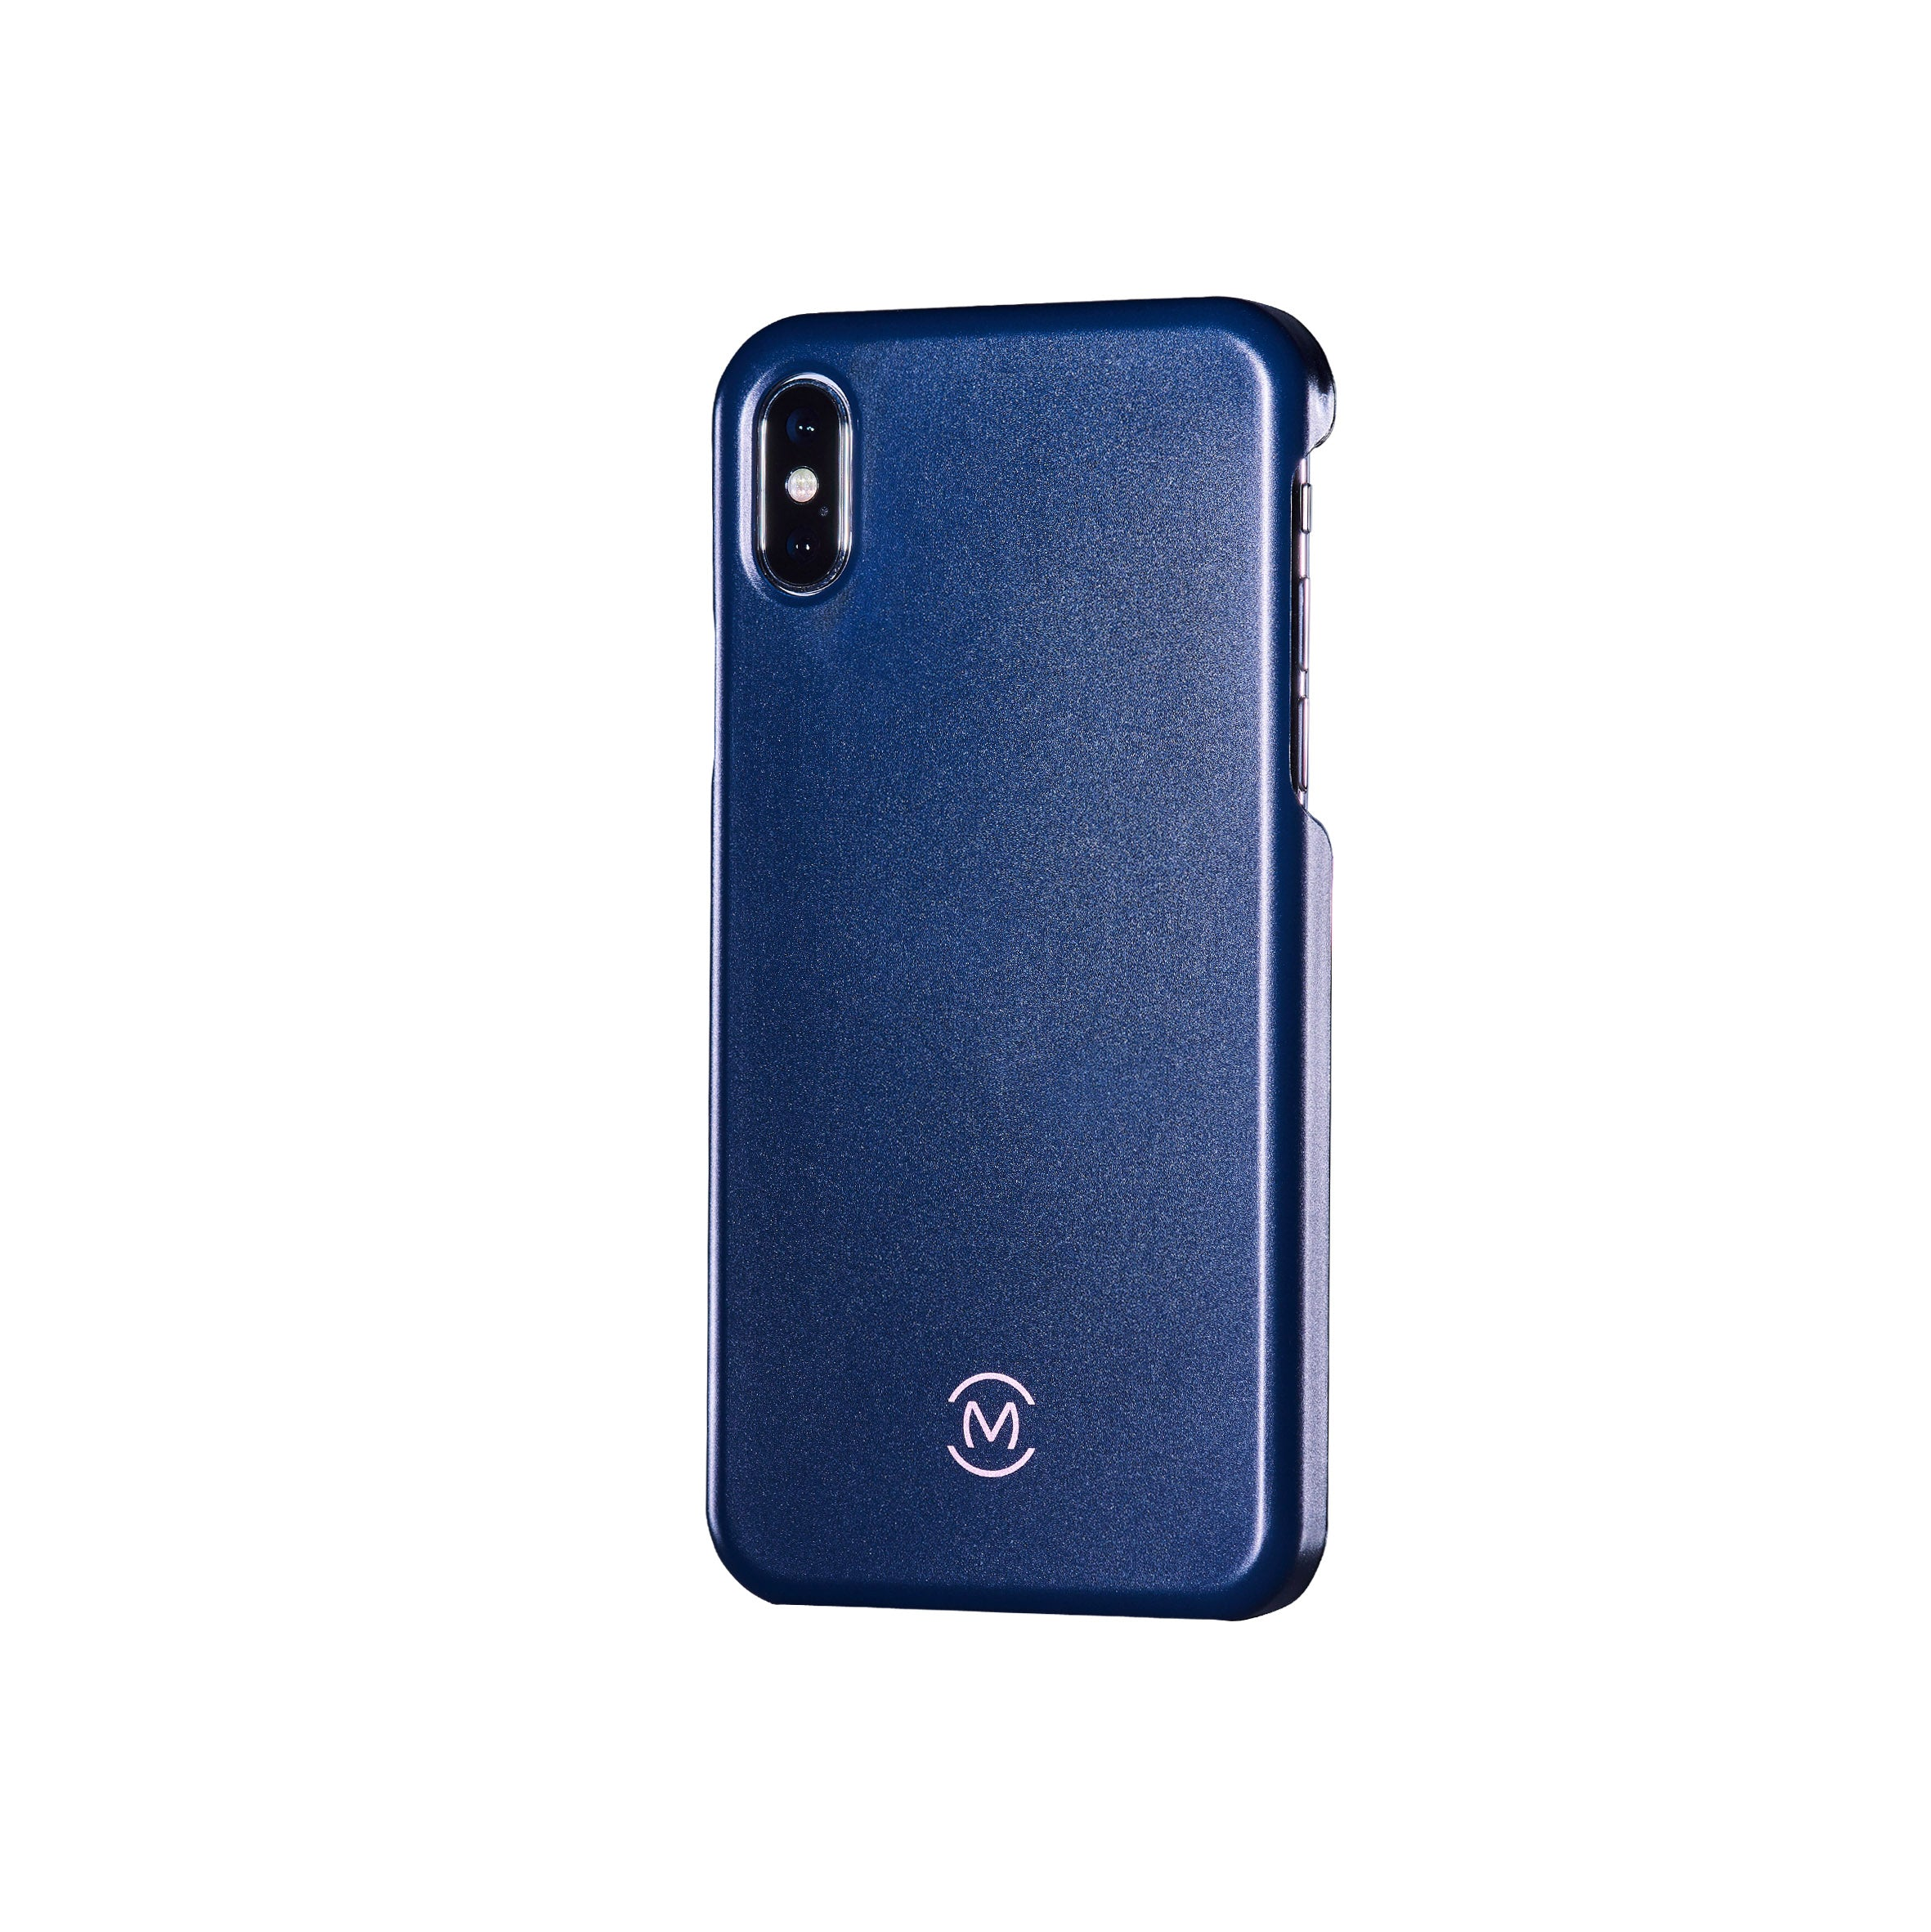 Navy Matte Lapis Lazuli Phone Case by Movement for iPhone X (Left)